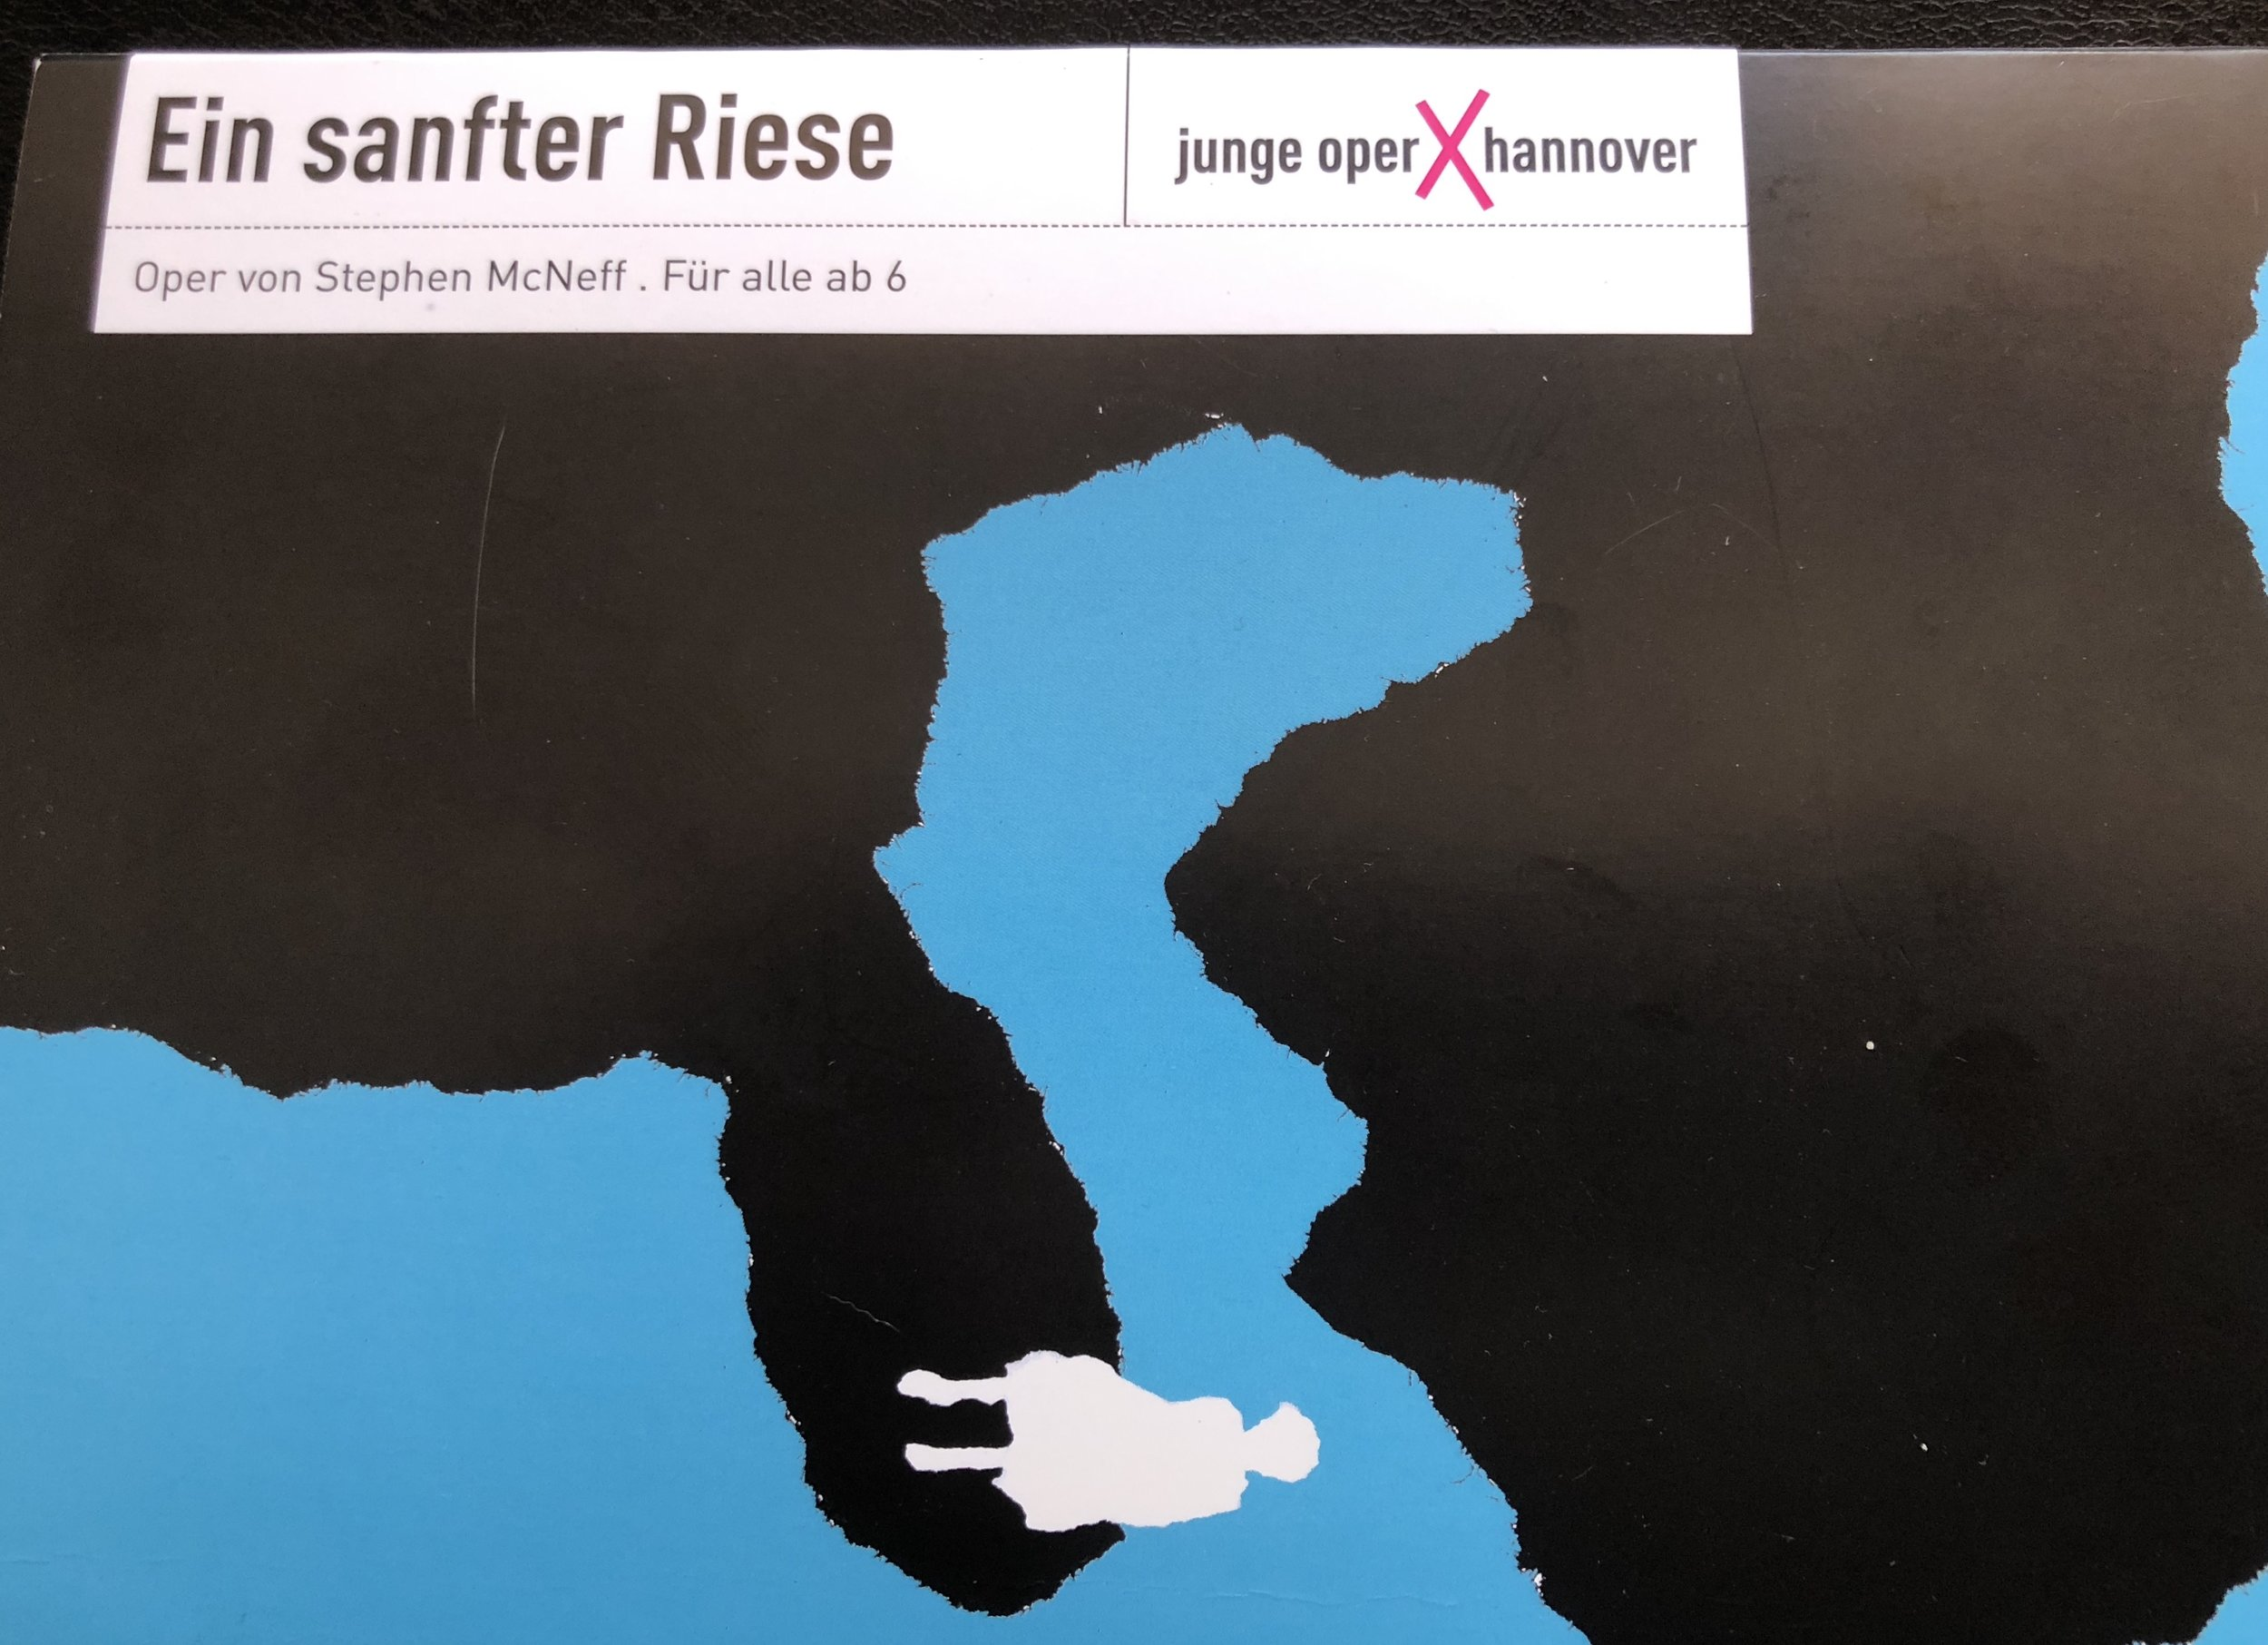 Programme Cover for Ein sanfter Riese (Gentle Giant)